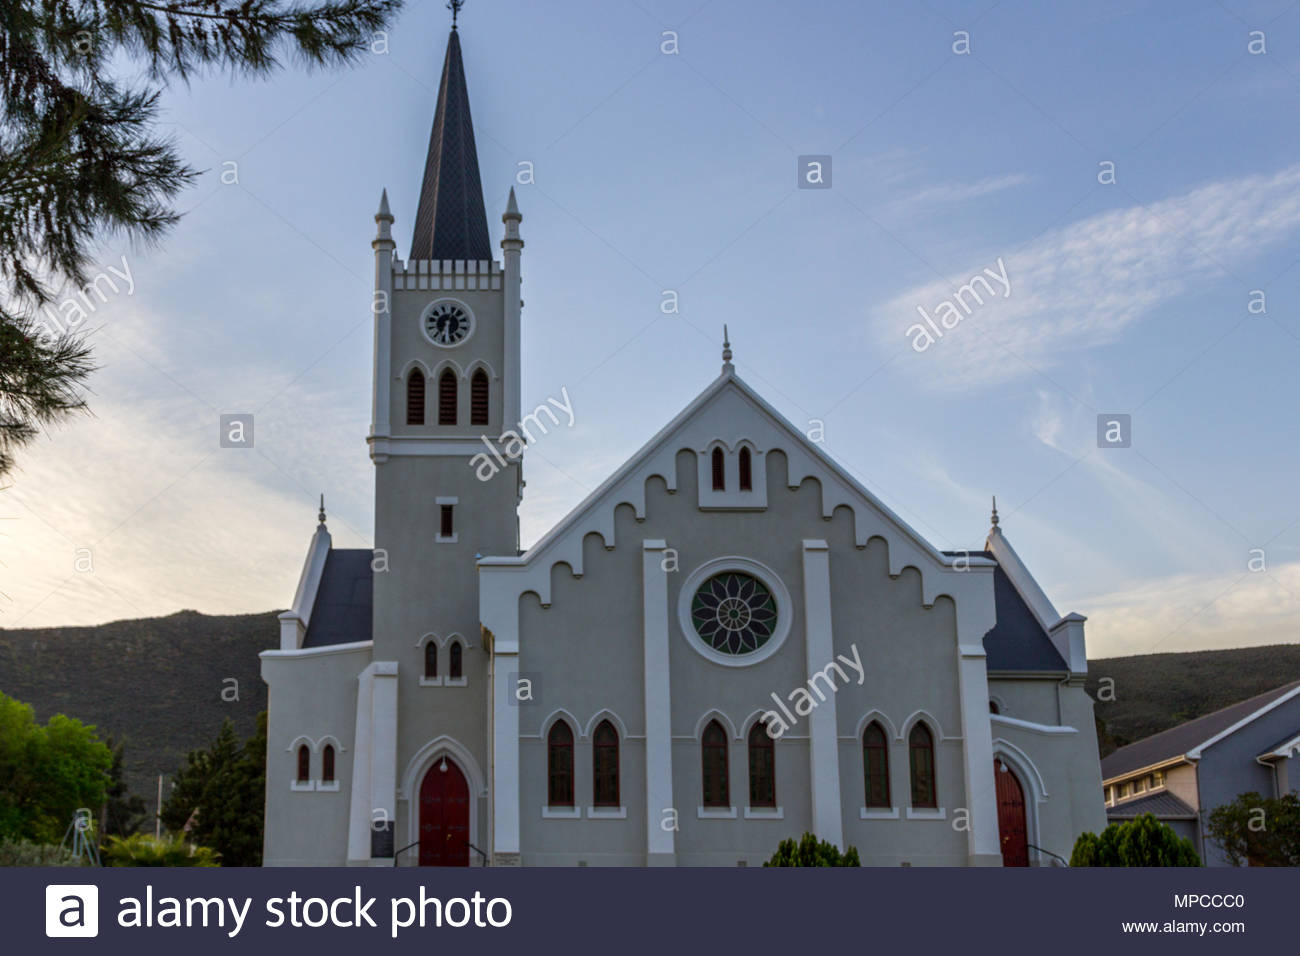 Dutch Reform Church, Barrydale, South Africa - Stock Image